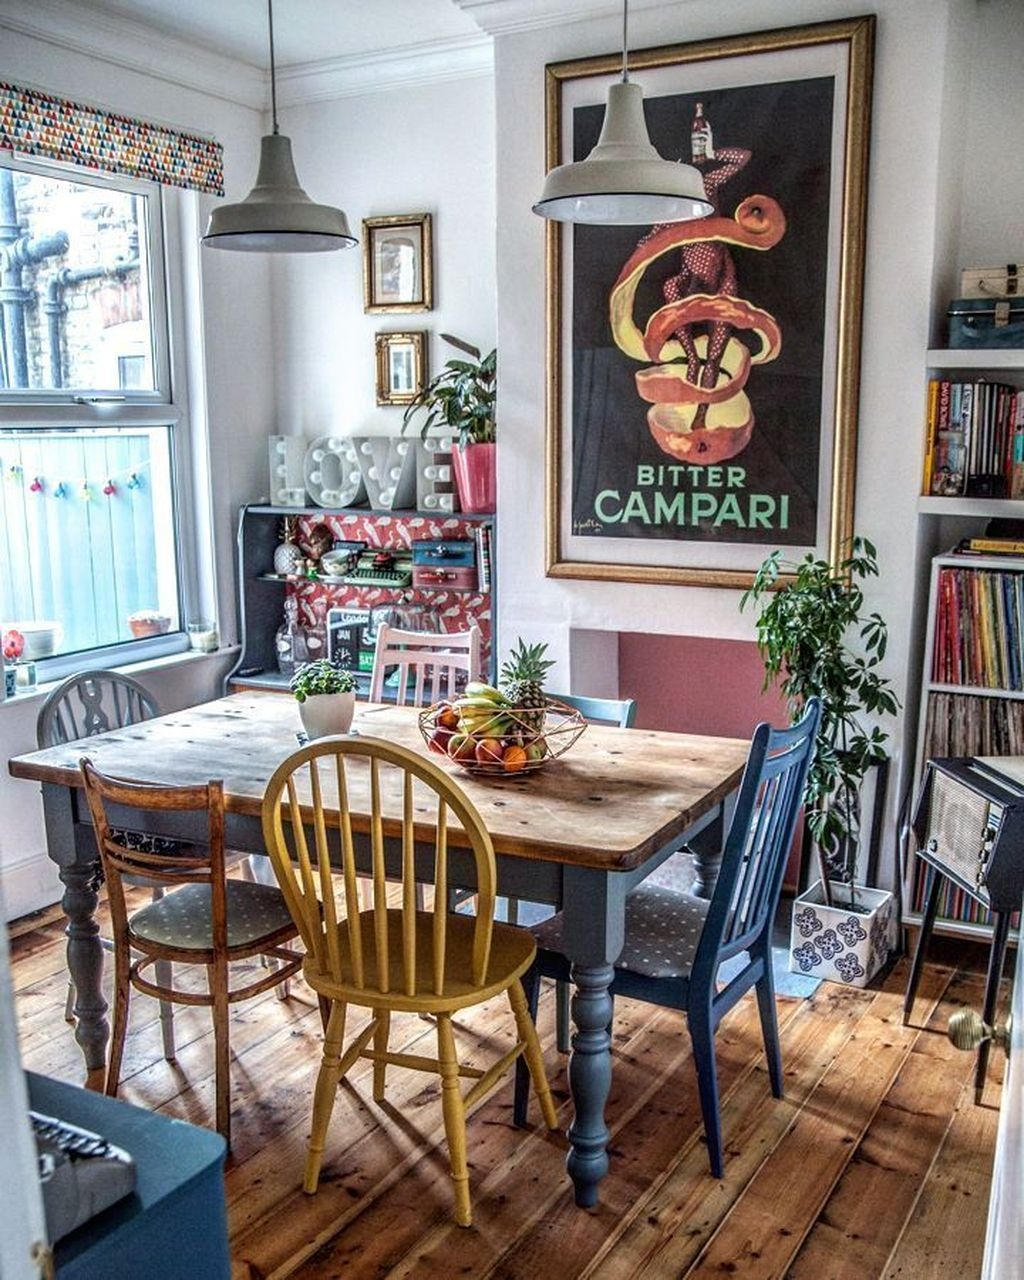 Unordinary Dining Room Design Ideas With Bohemian Style32